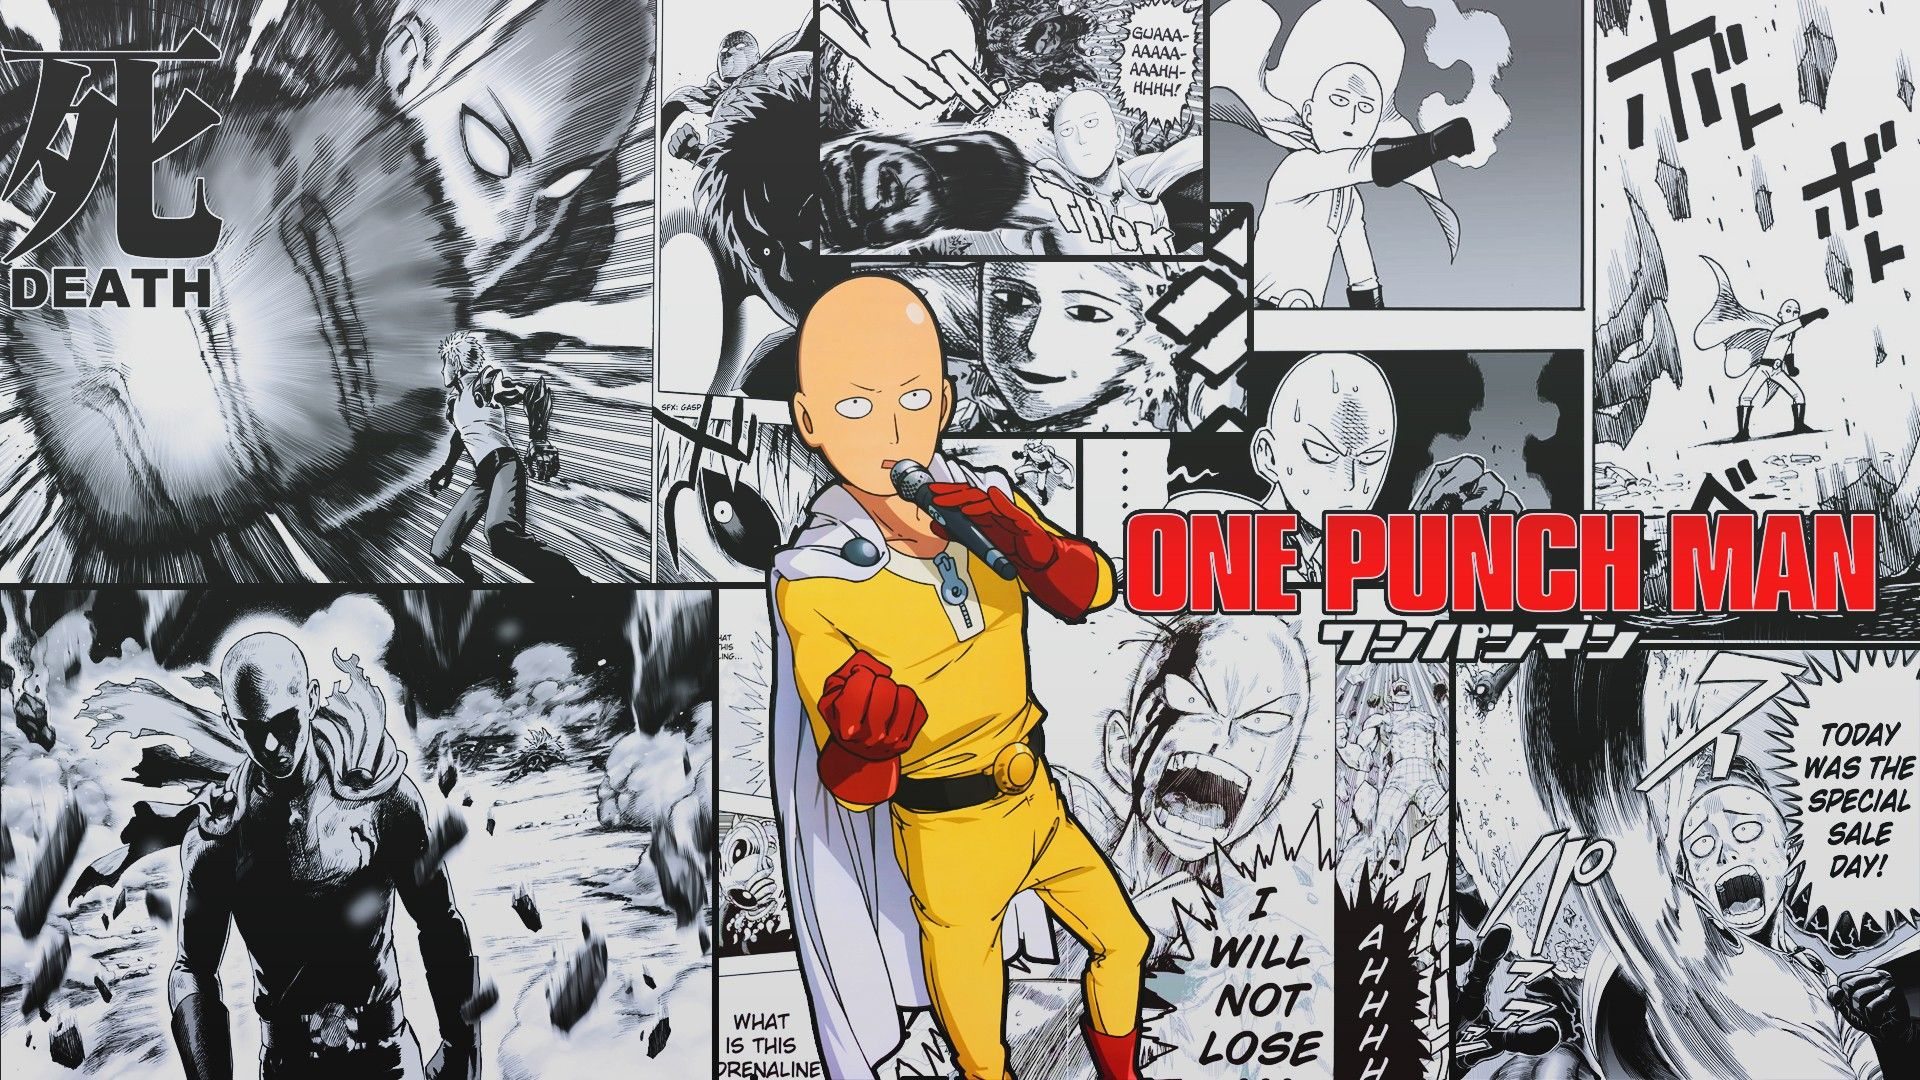 One Punch Man Season 3 Plot Spoilers based on Manga Chapters